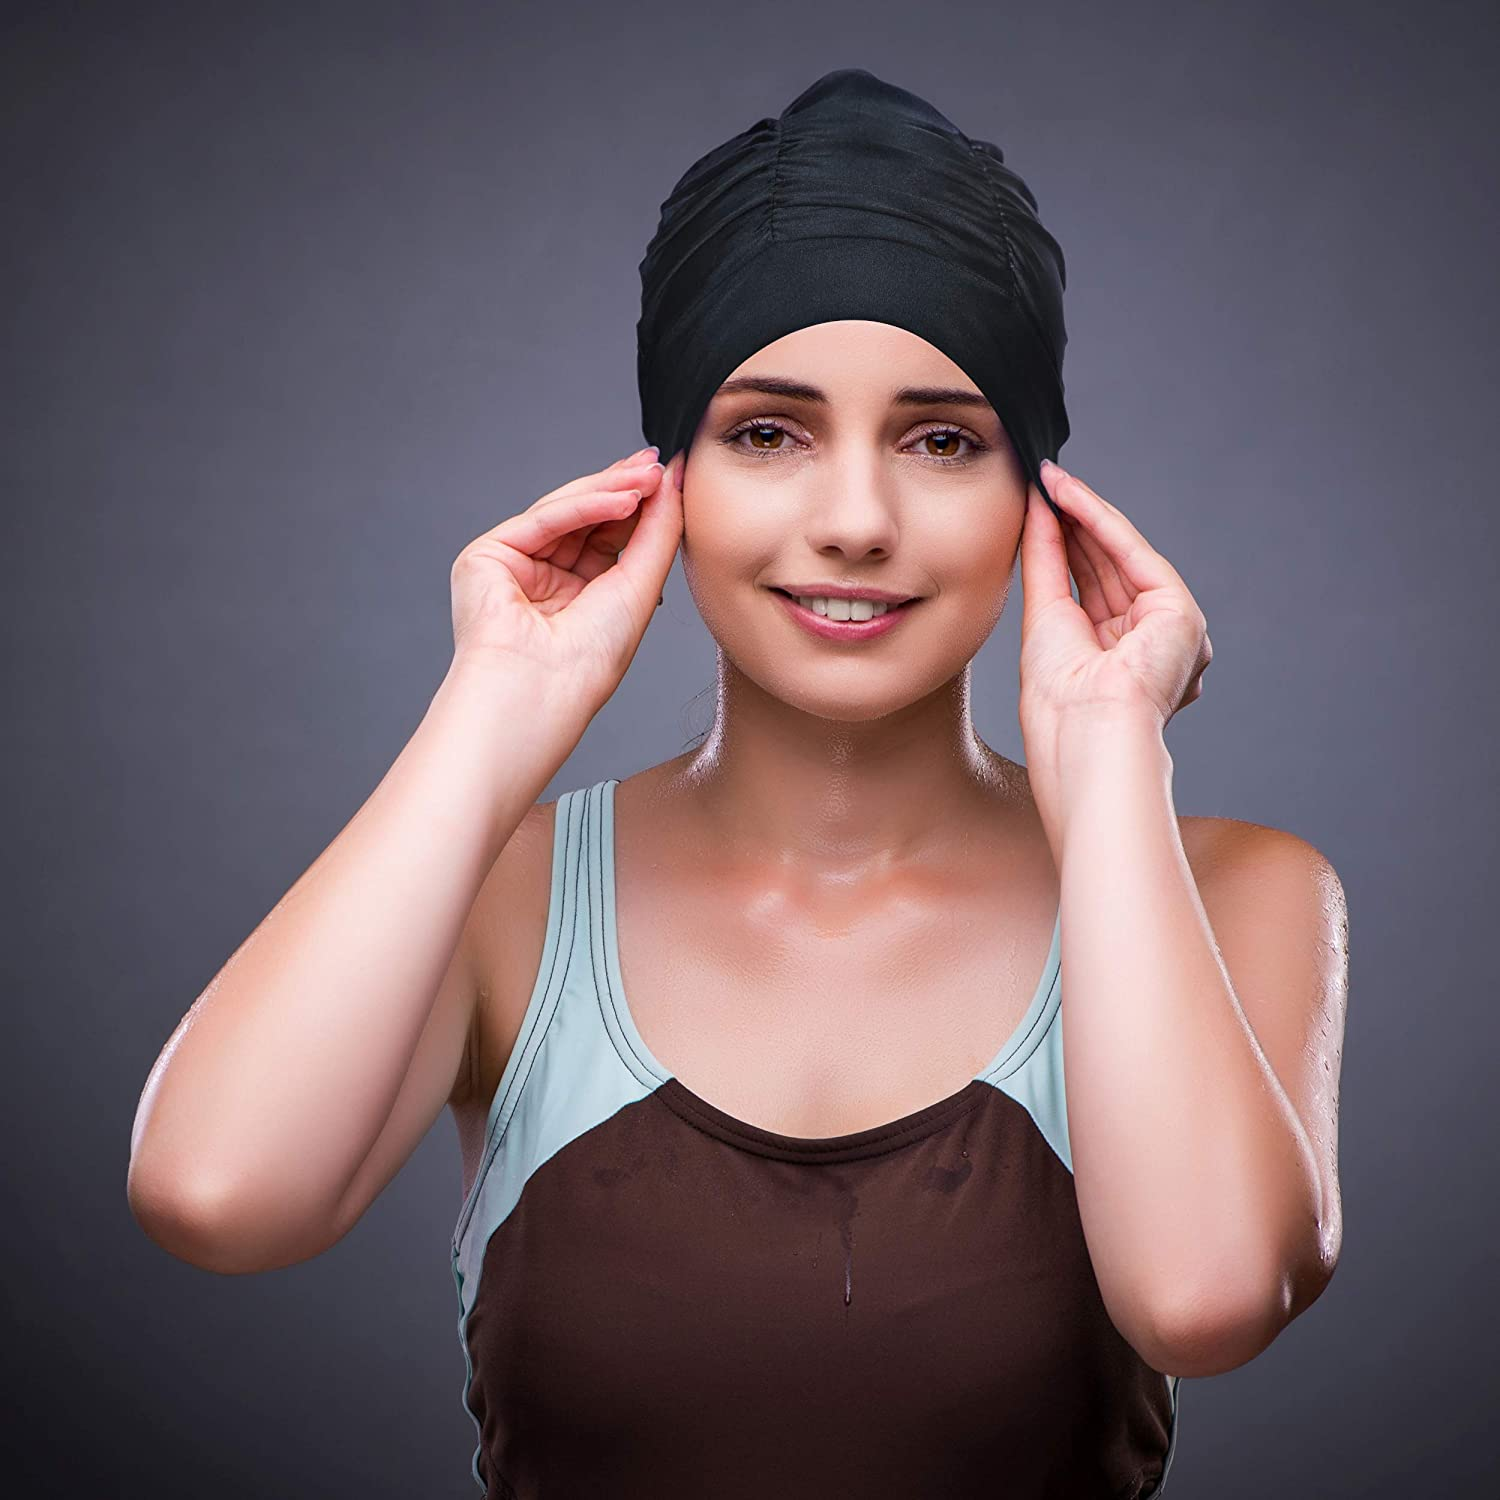 Black ETCBUYS Womens Swimming Cap in Polyester Turban Style with Pleated Latex Lining to Hold Long Hair Ideal for Women and Girls